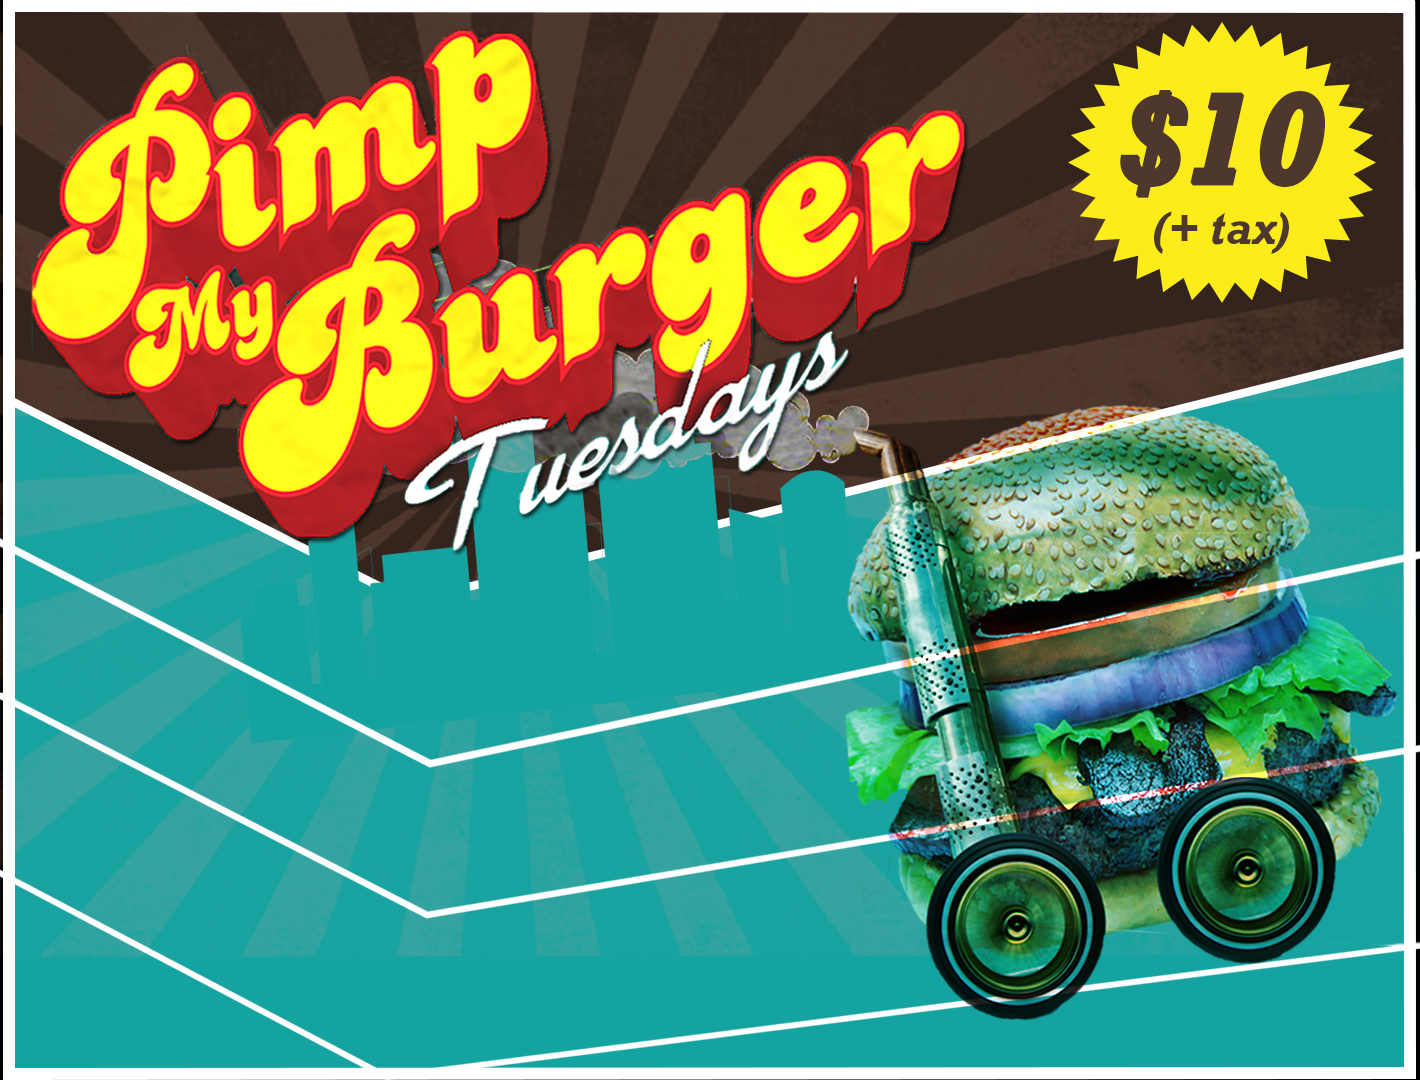 Every Tuesday</br> Pimp Your Burger just the way you like it for just $10